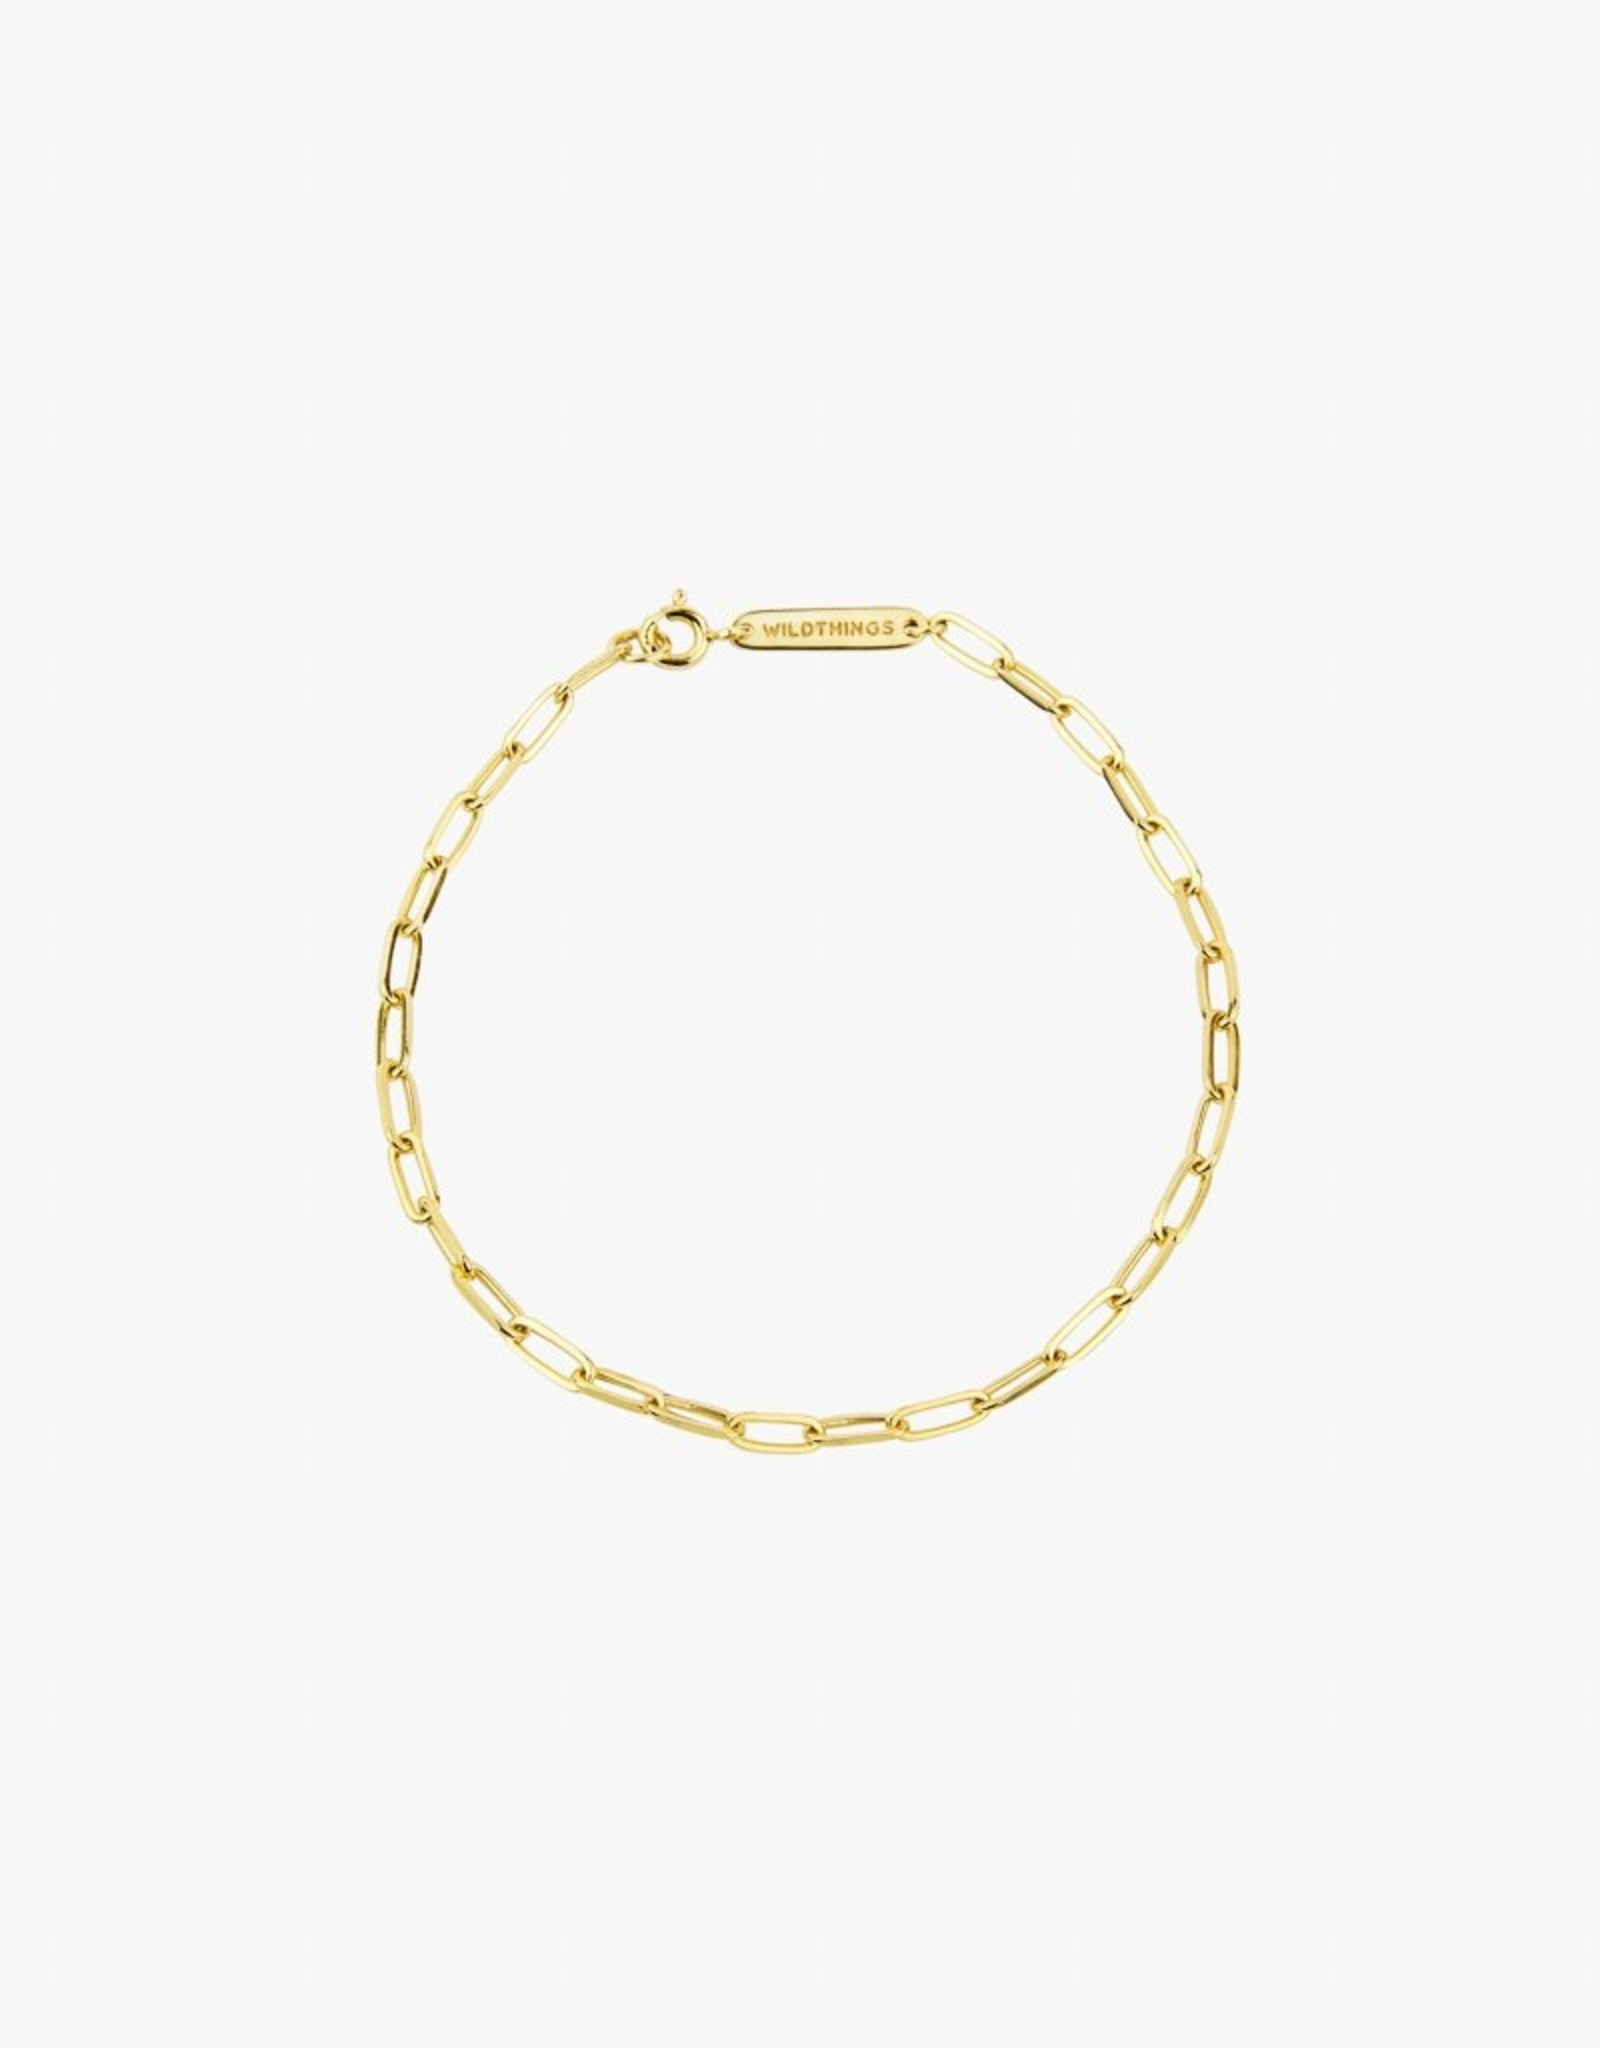 Wildthings Collectables Chain Bracelet Gold